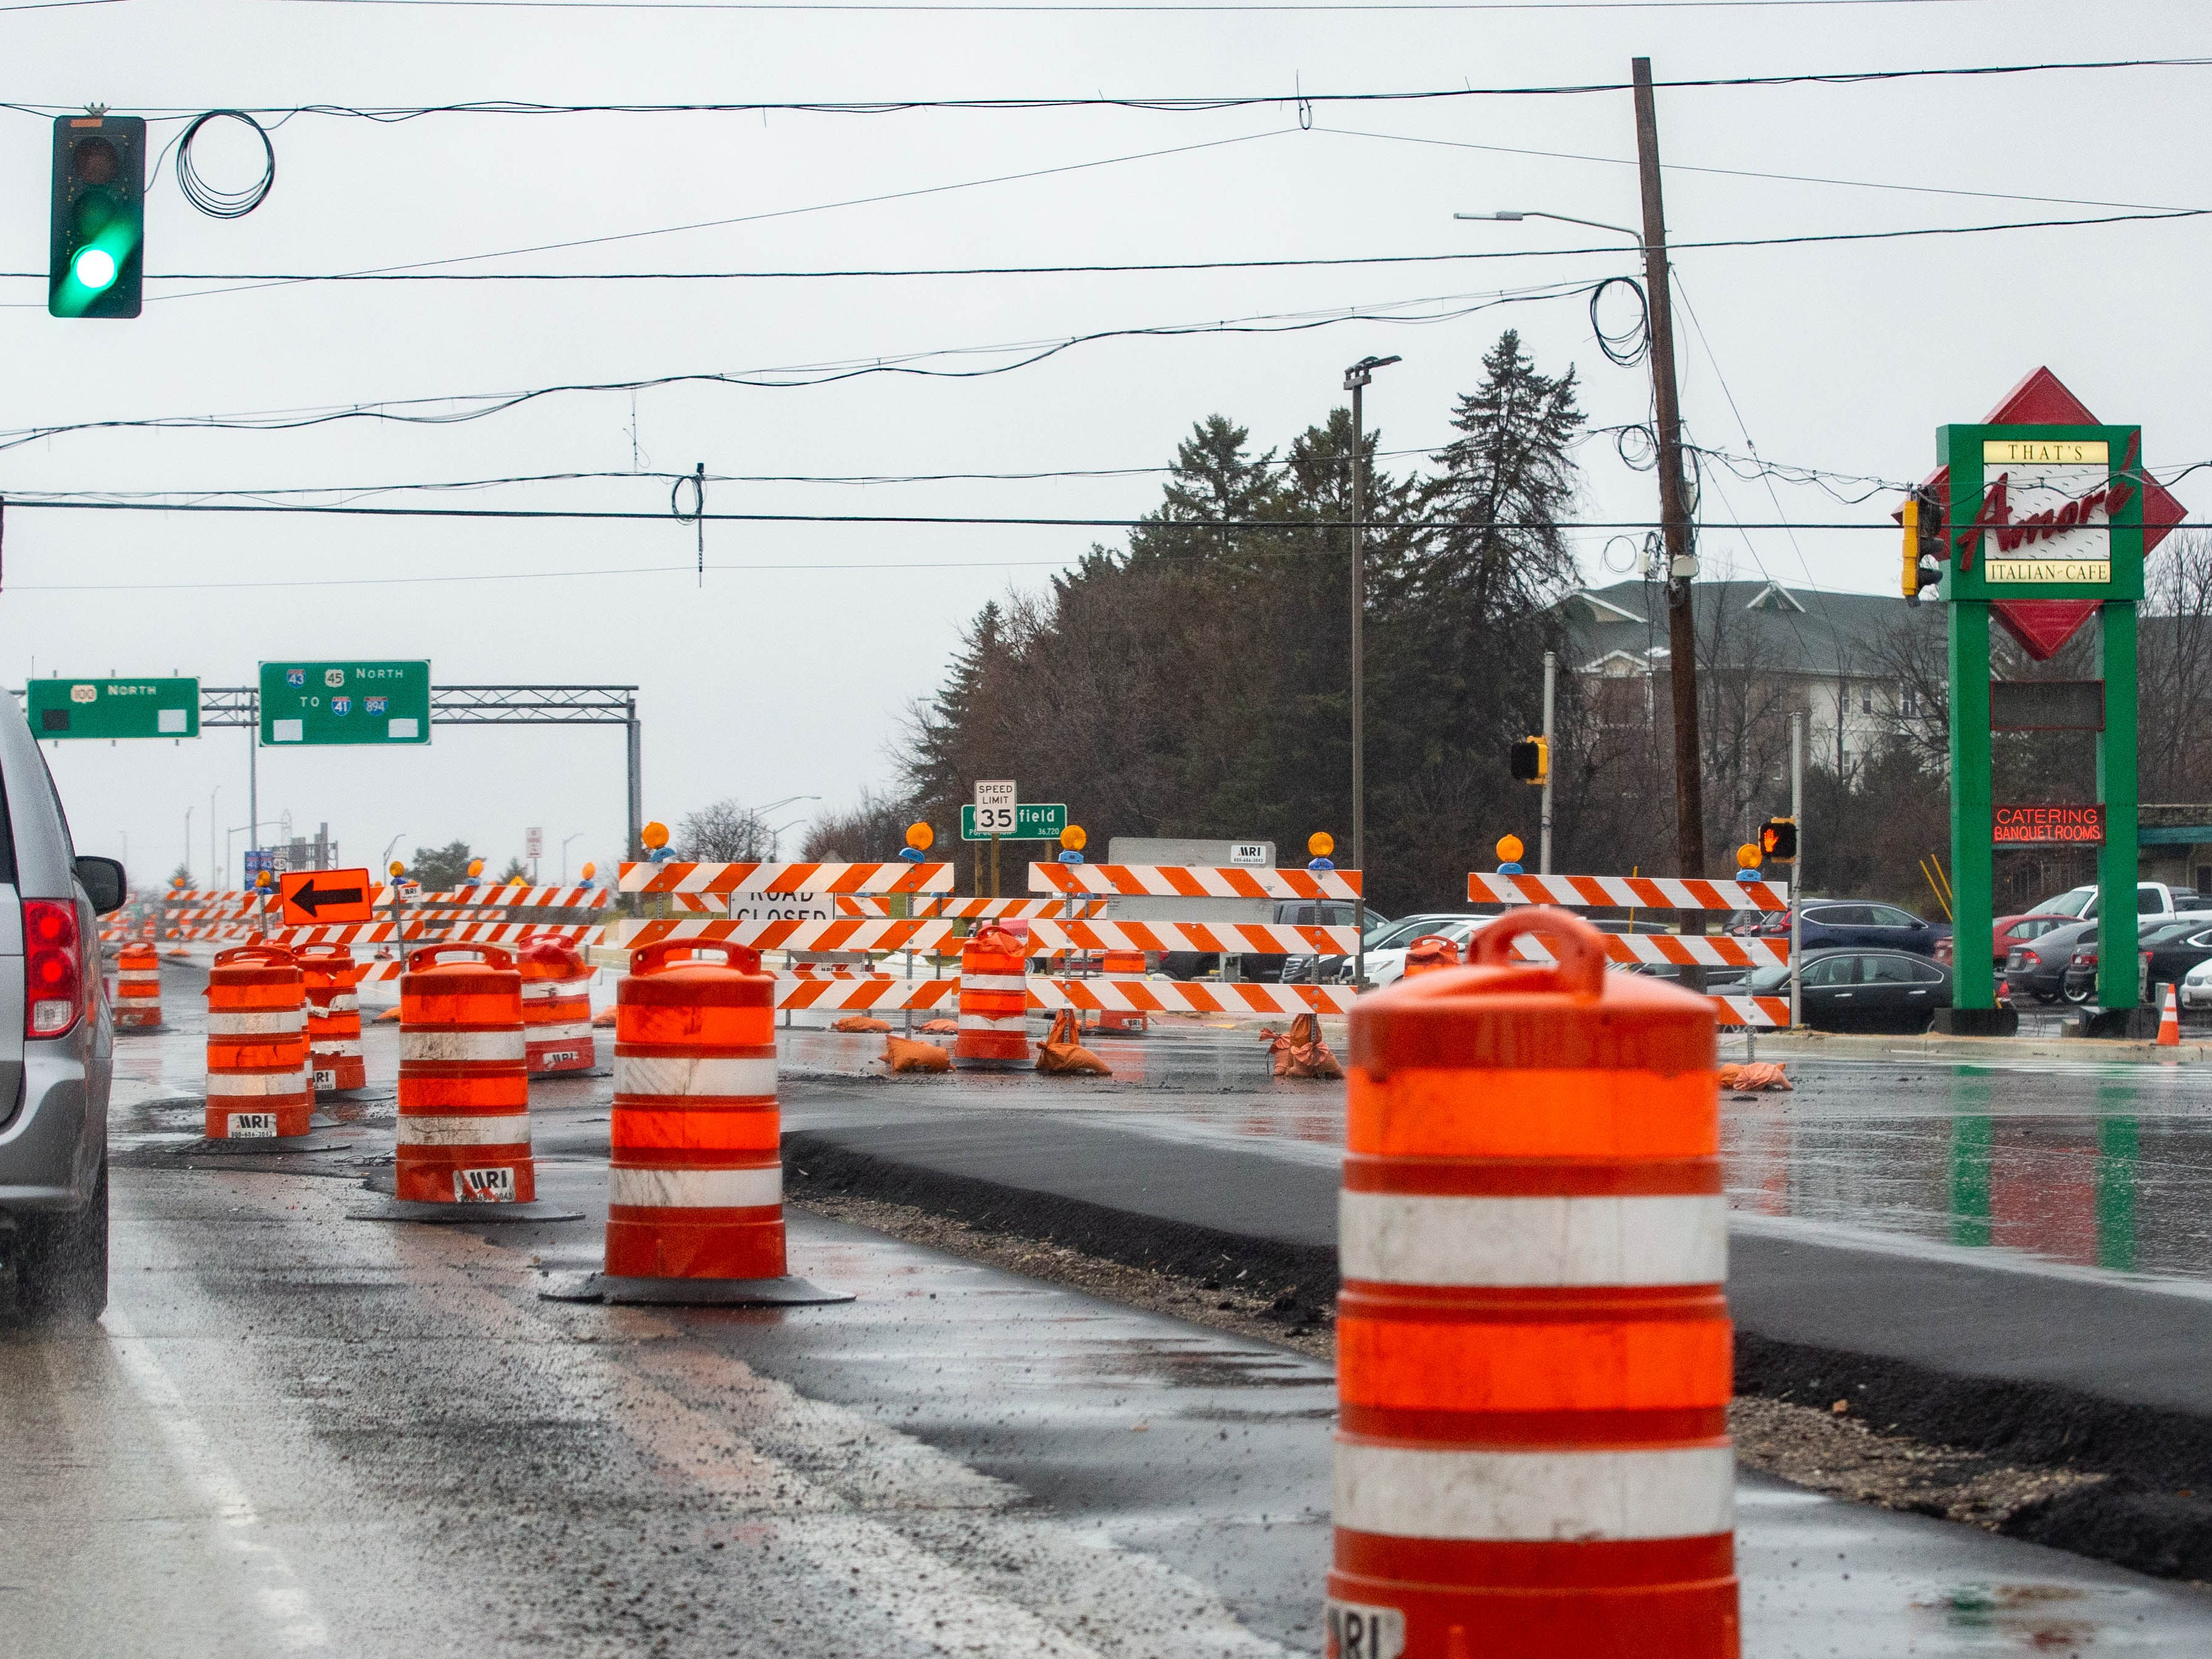 Traffic flows past That's Amore Italian Cafe at South 108th St. and West Edgerton Ave. in Hales Corners on Sunday, Dec. 2, 2018. Construction issues on the northbound lanes (at right) have delayed the project.